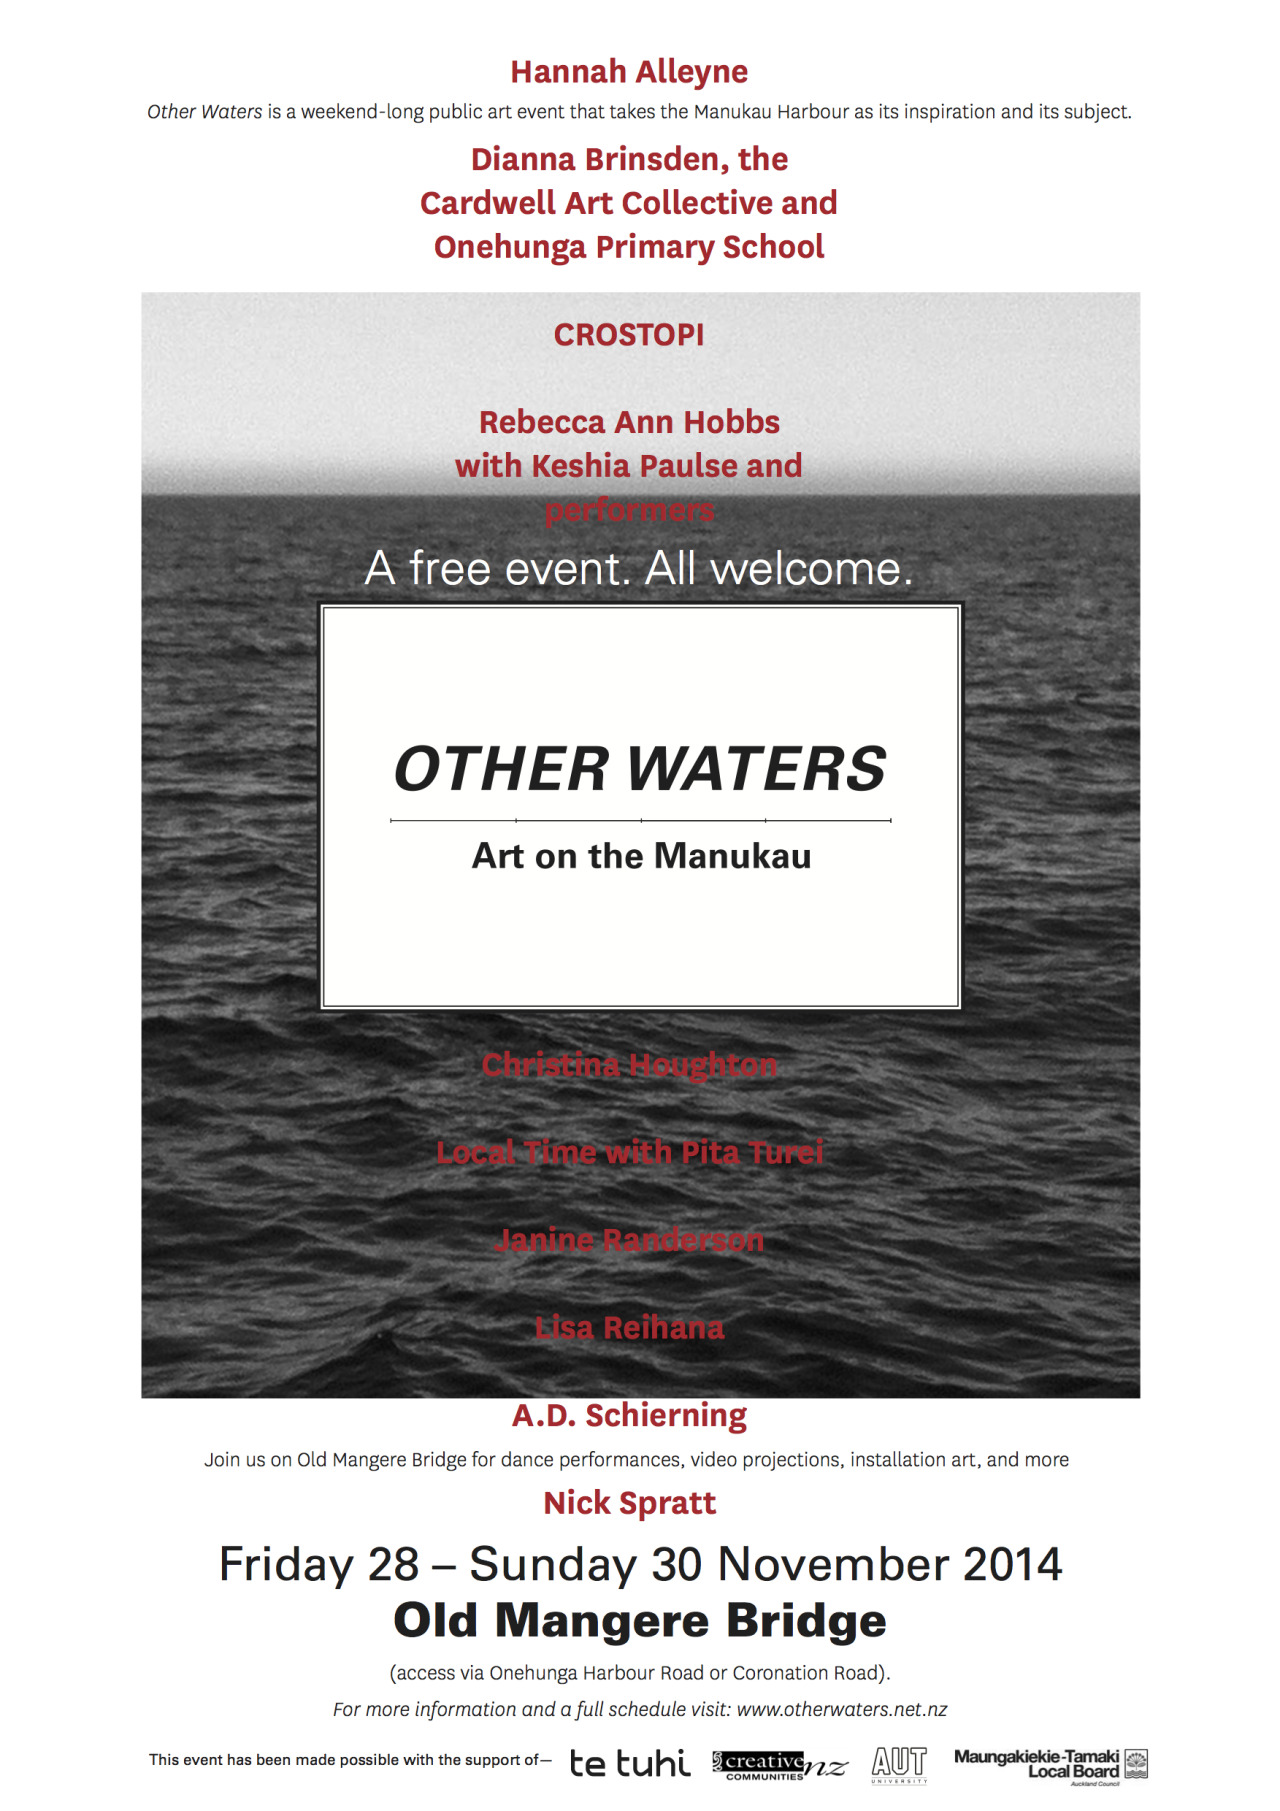 http://www.otherwaters.net.nz/